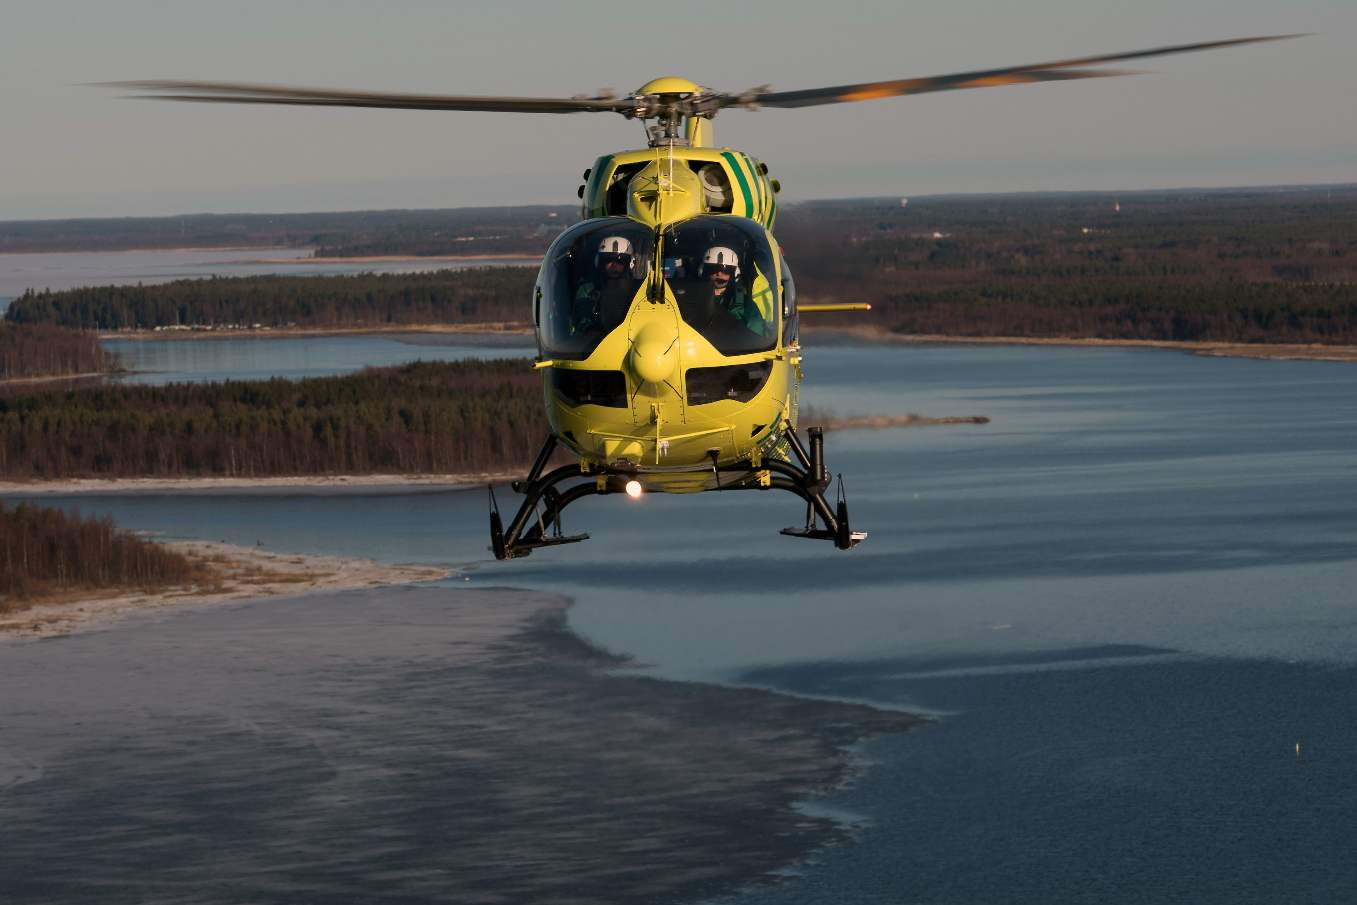 Philippine Coast Guard orders Airbus Helicopters H145